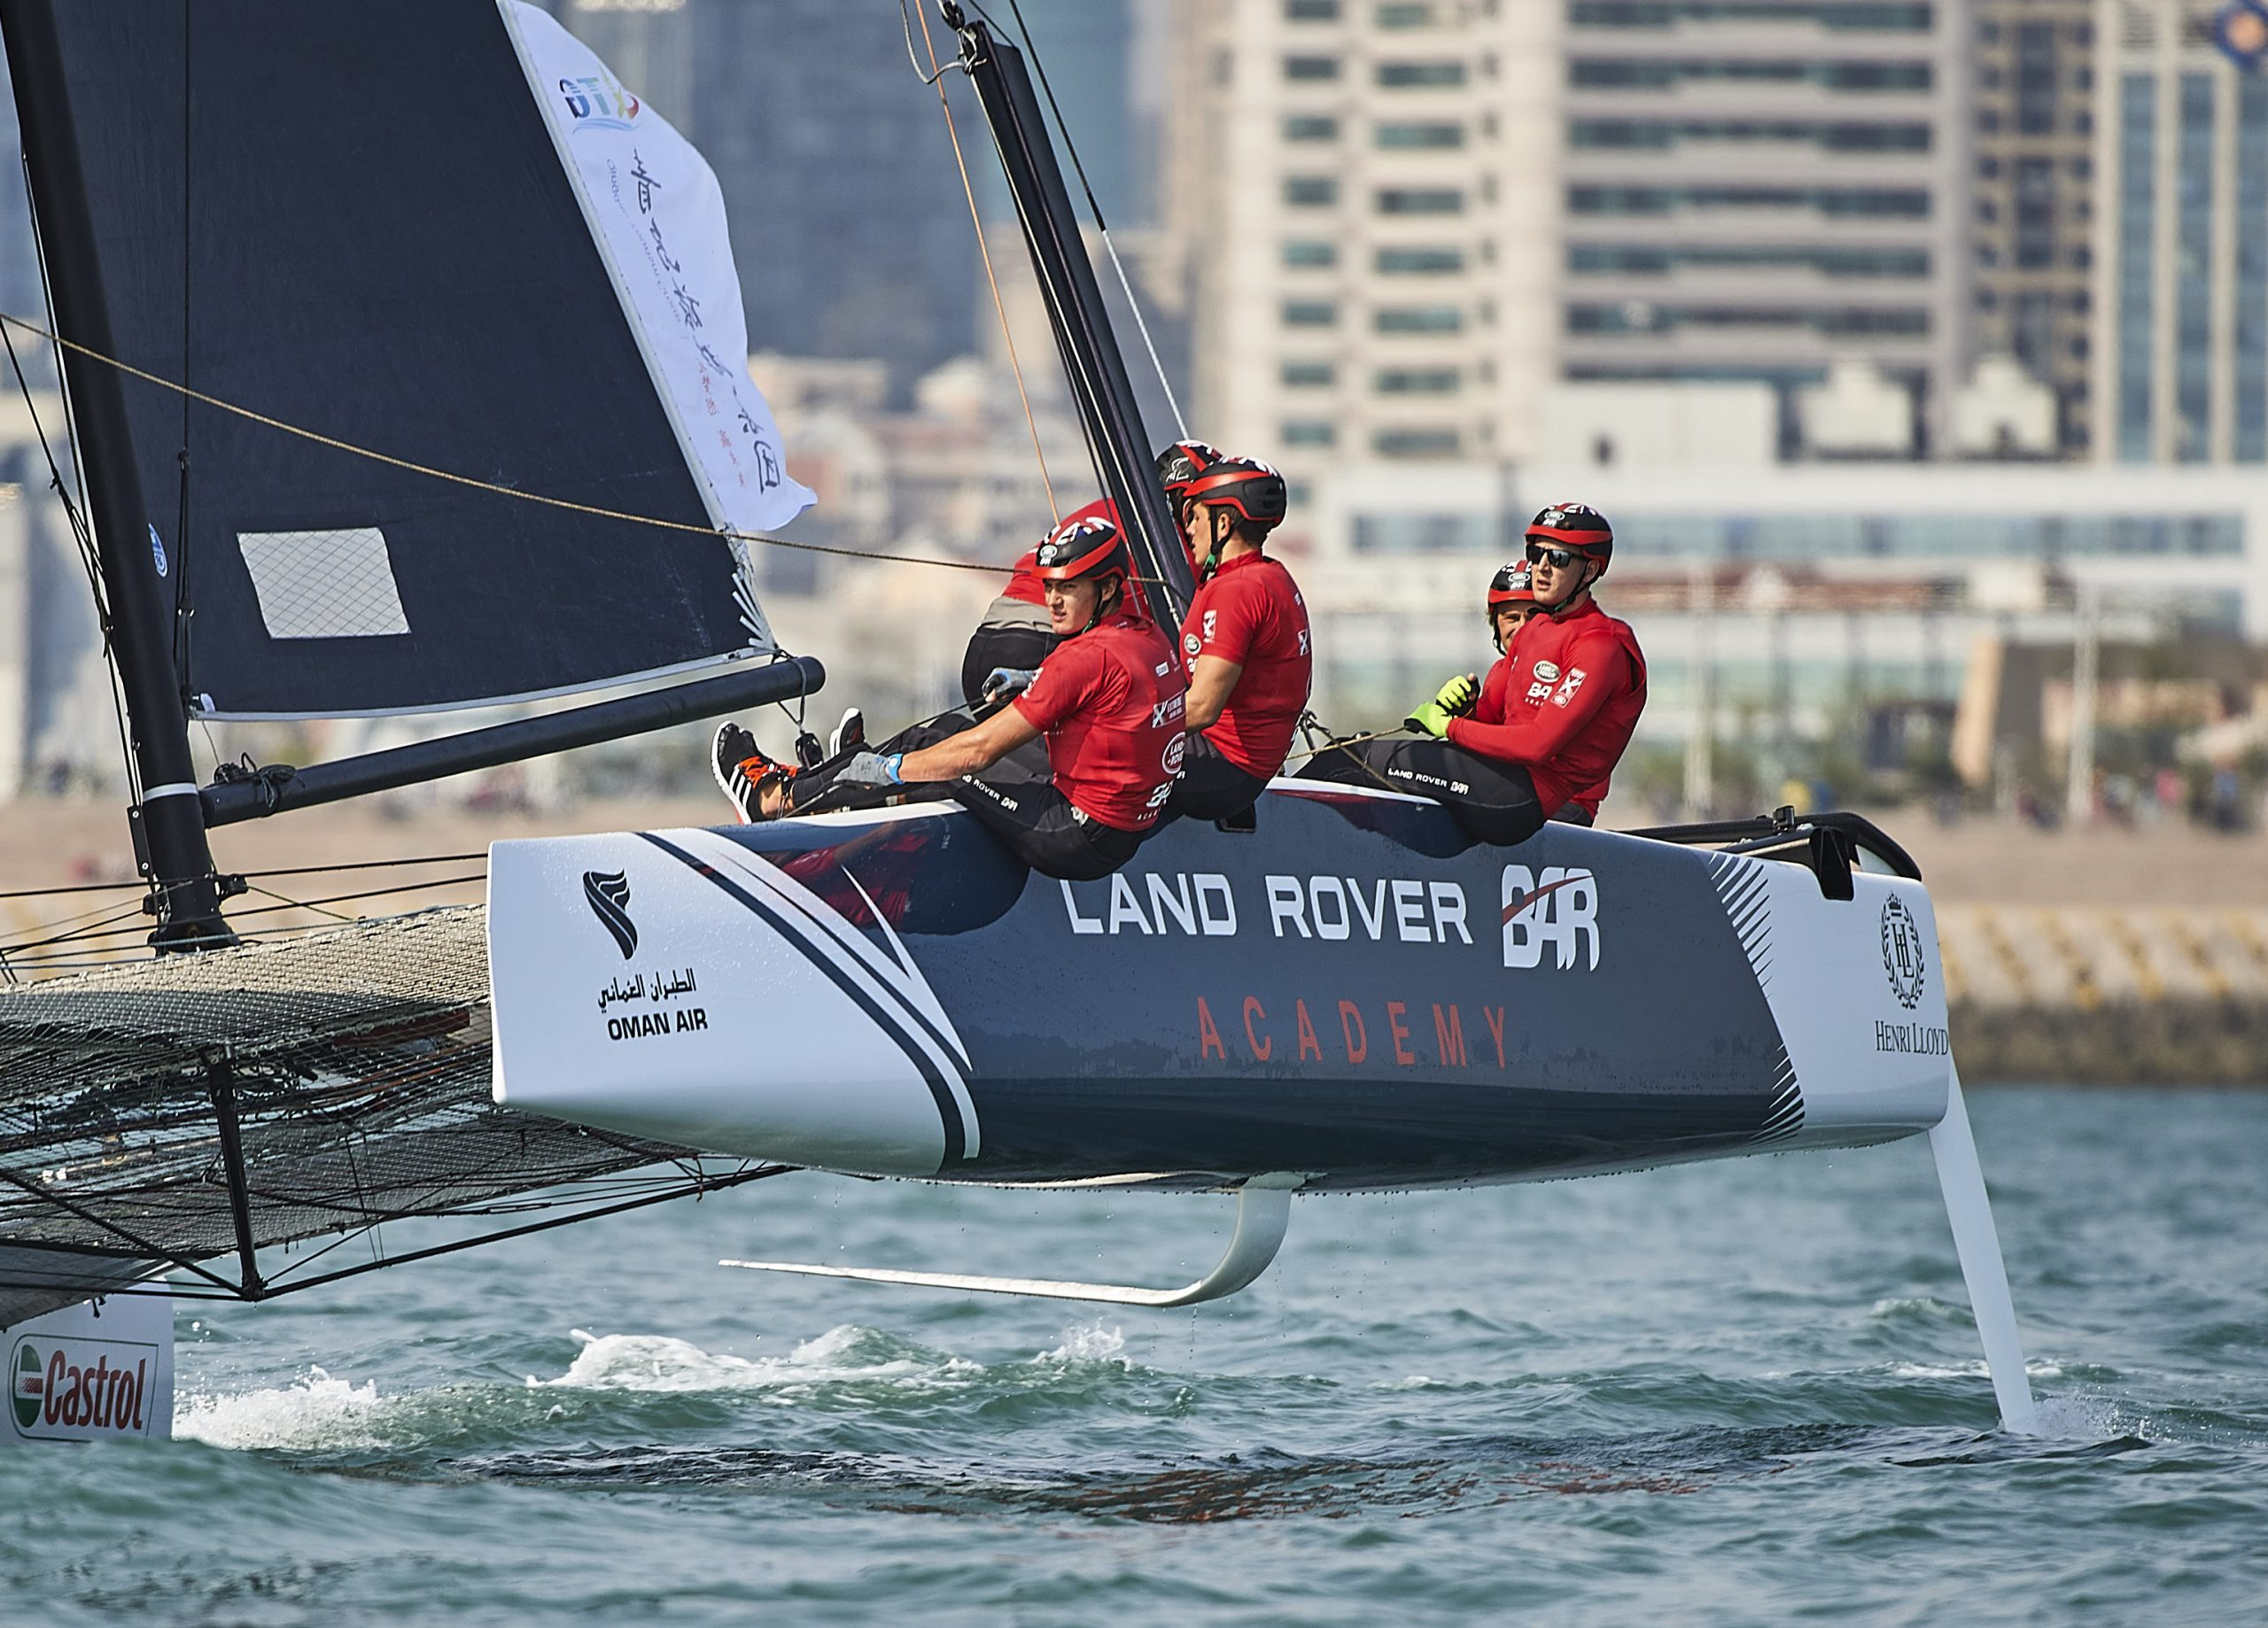 Land Rover BAR Academy racing in the light conditions in Qingdao. Photo Aitor Alcalde Colomer.